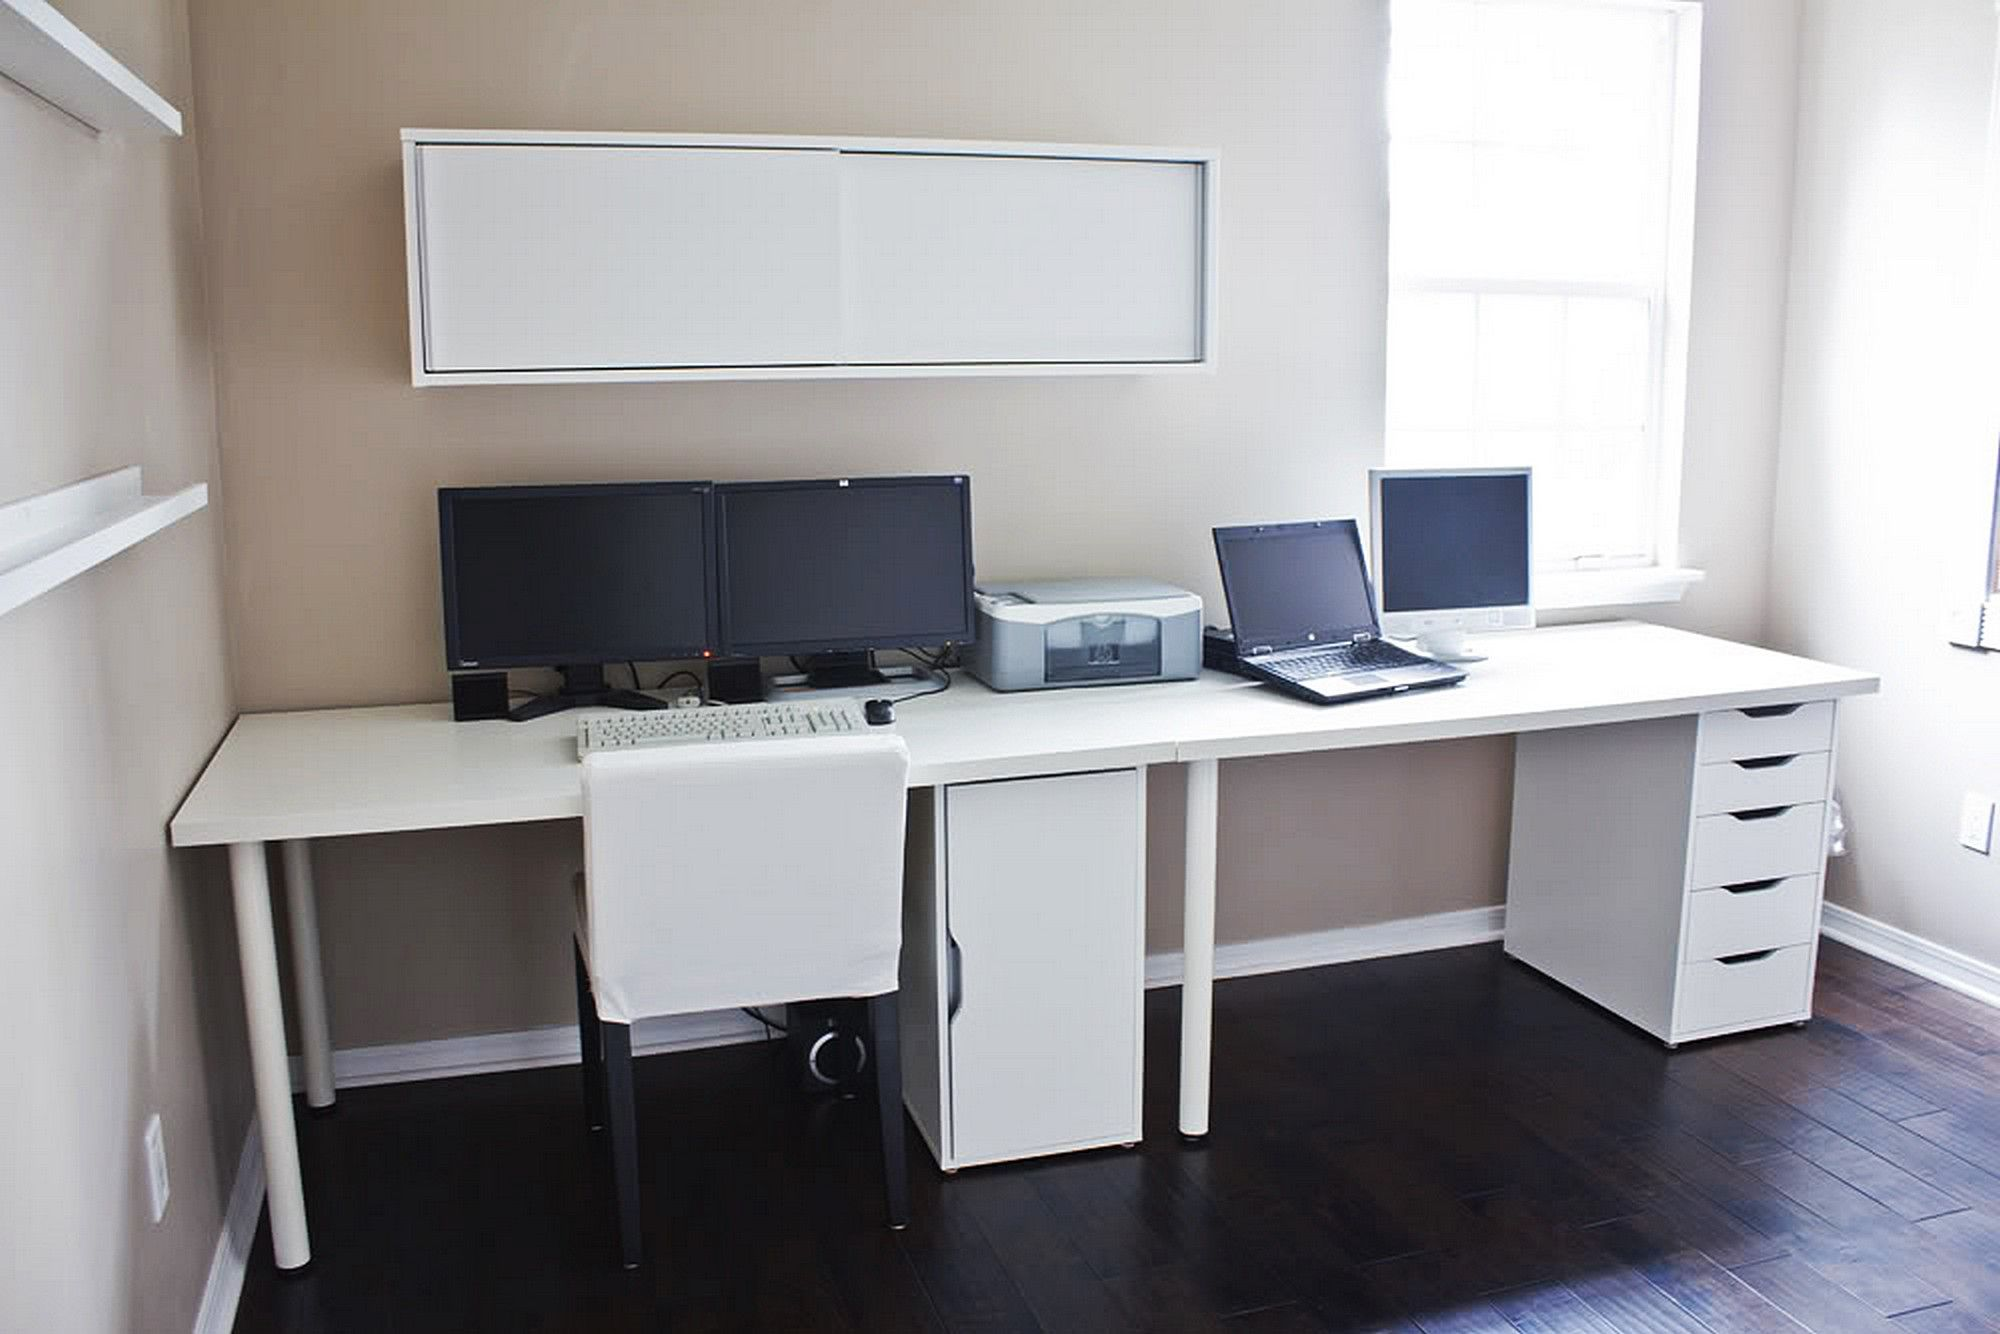 Clean White Computer Desk Setup from IKEA LINNMON ADILS with ALEX Storage  Drawer